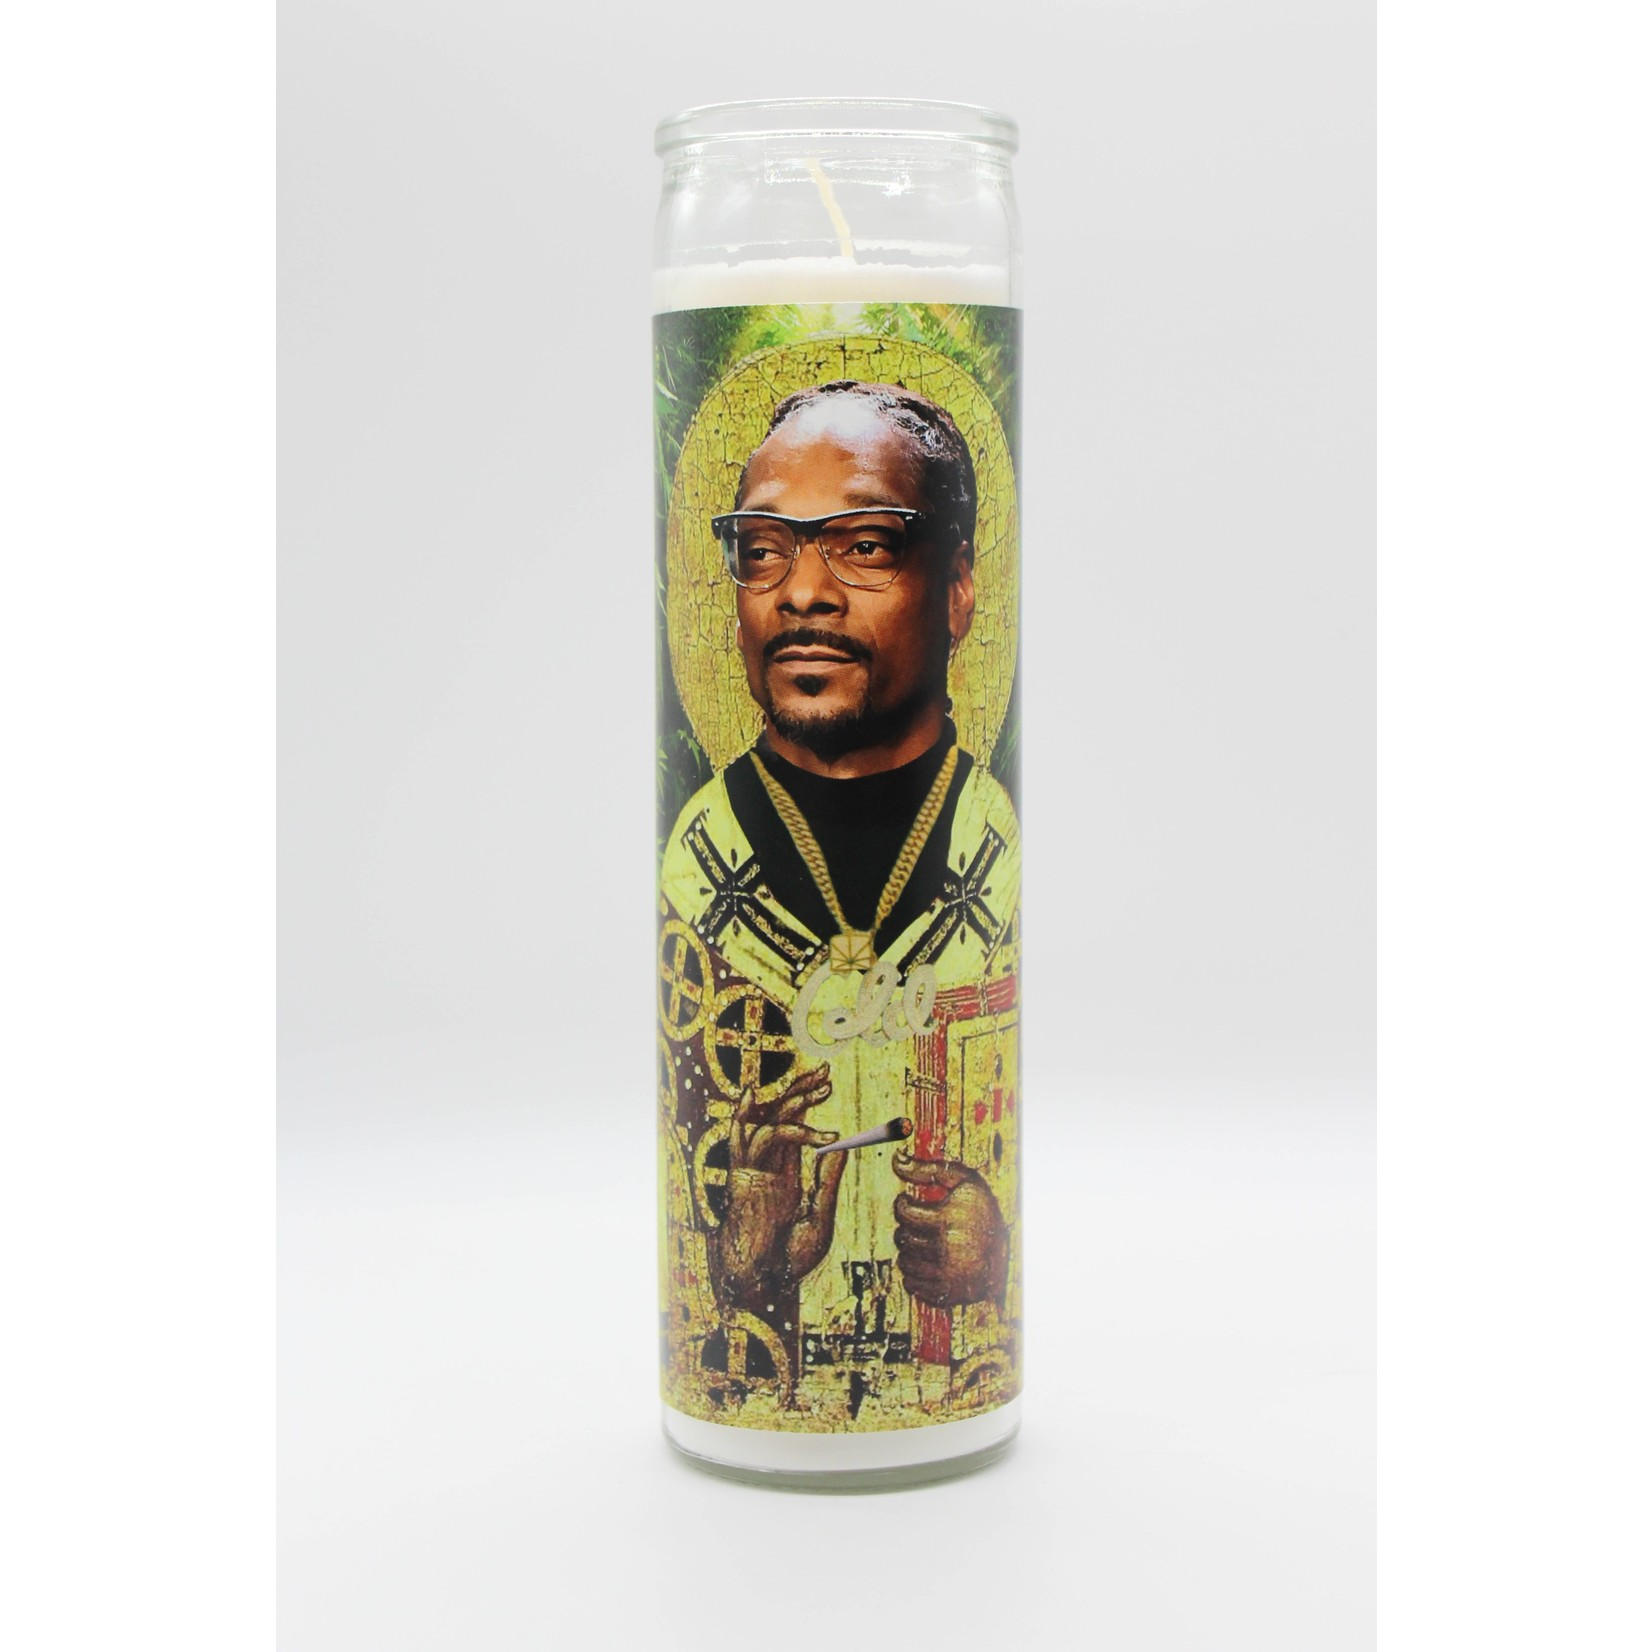 BobbyK Celebrity Saint Candle Collection